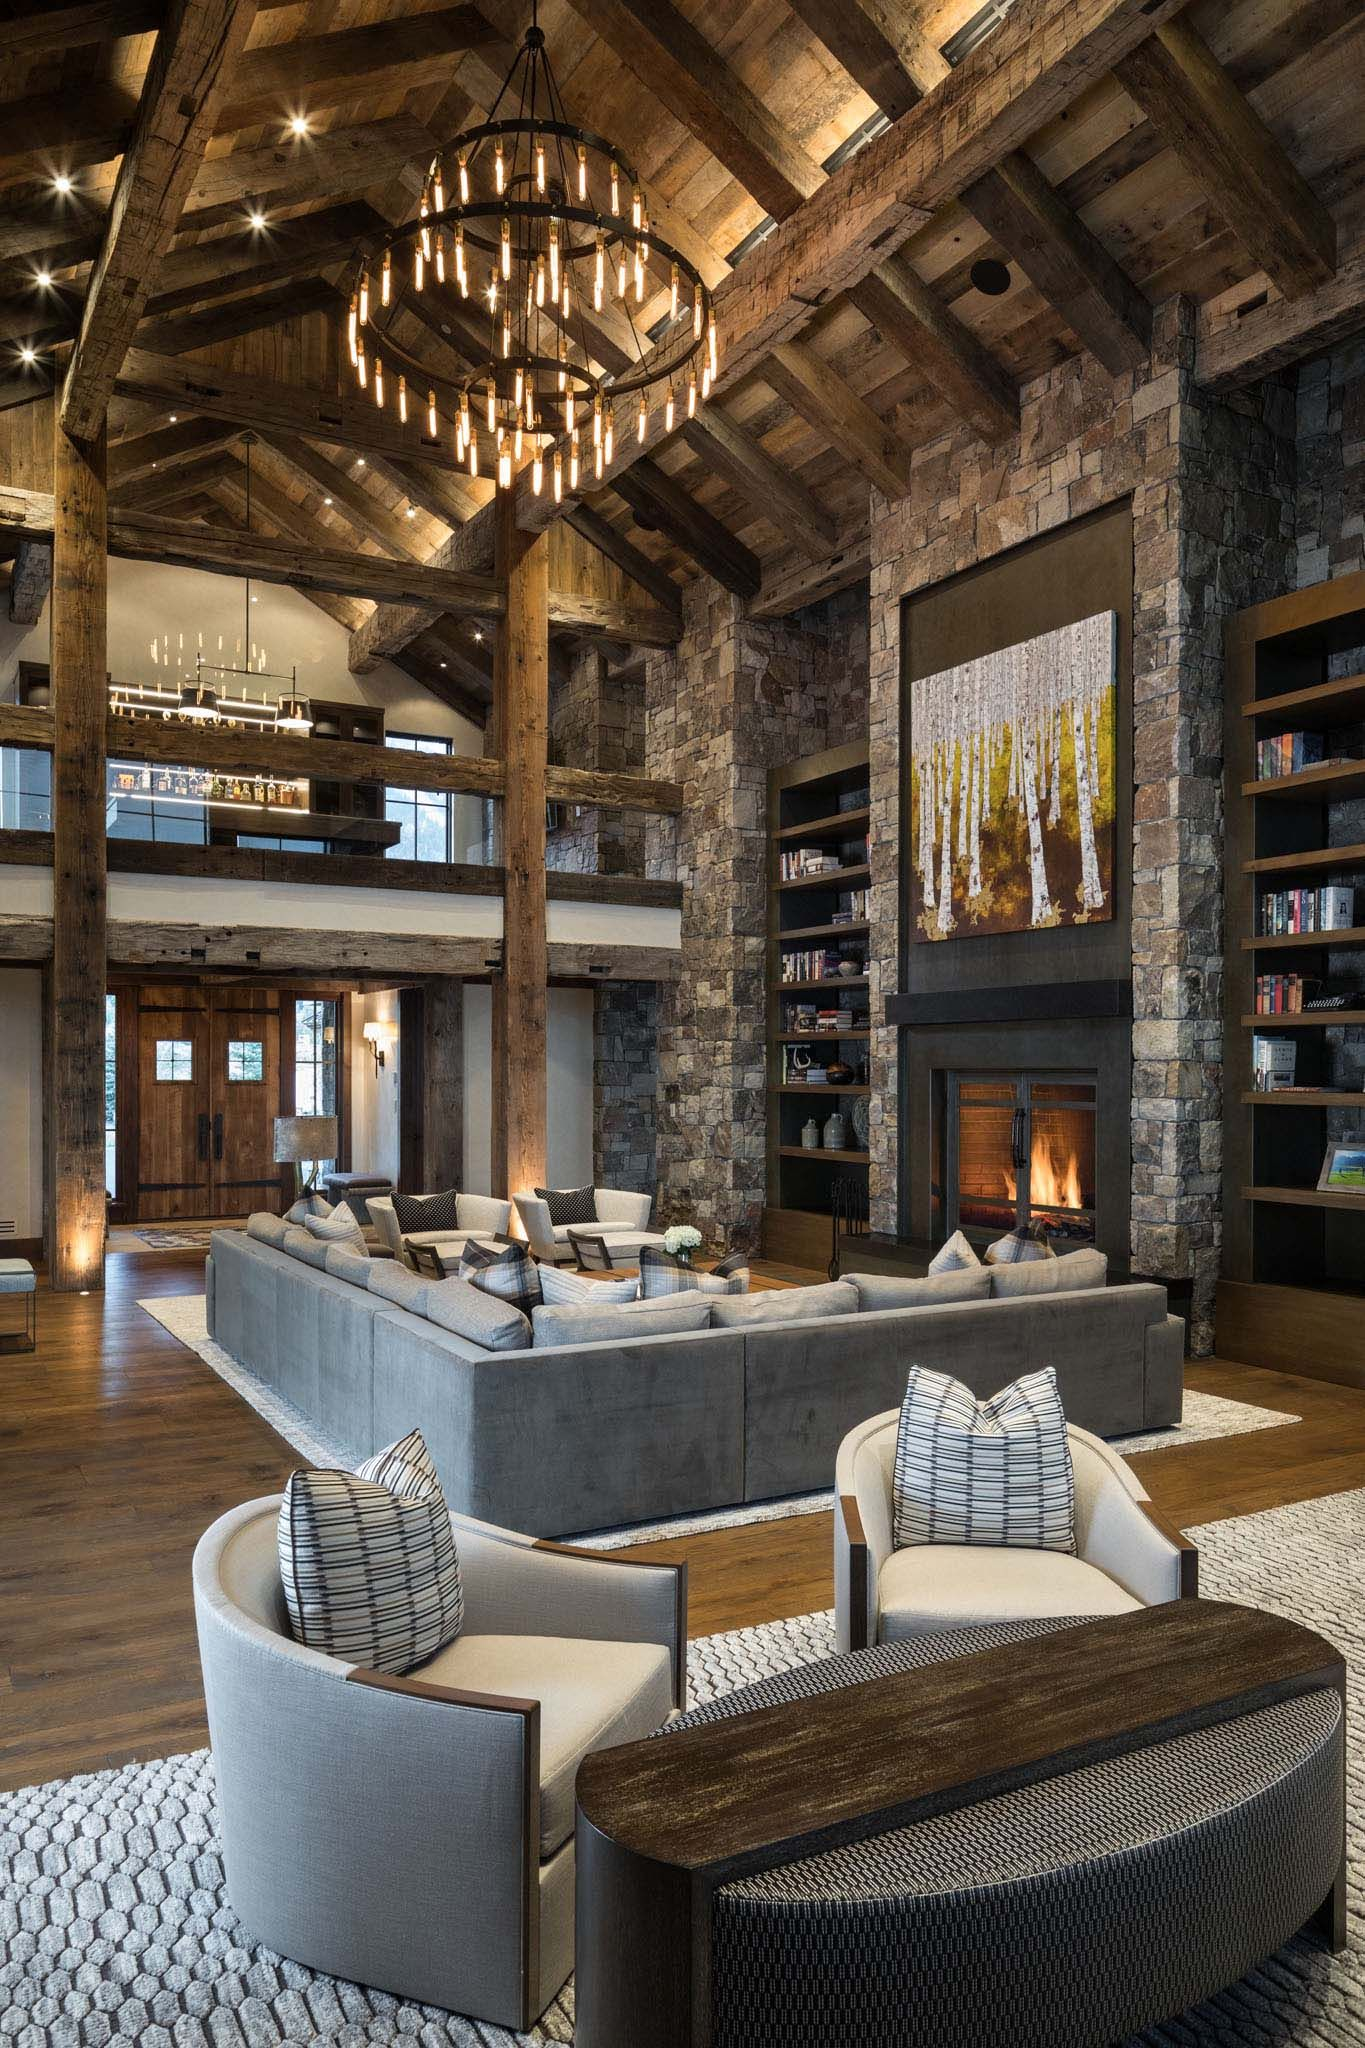 Delightful rustic home in Wyoming with a dramatic mountain backdrop #rustichomes